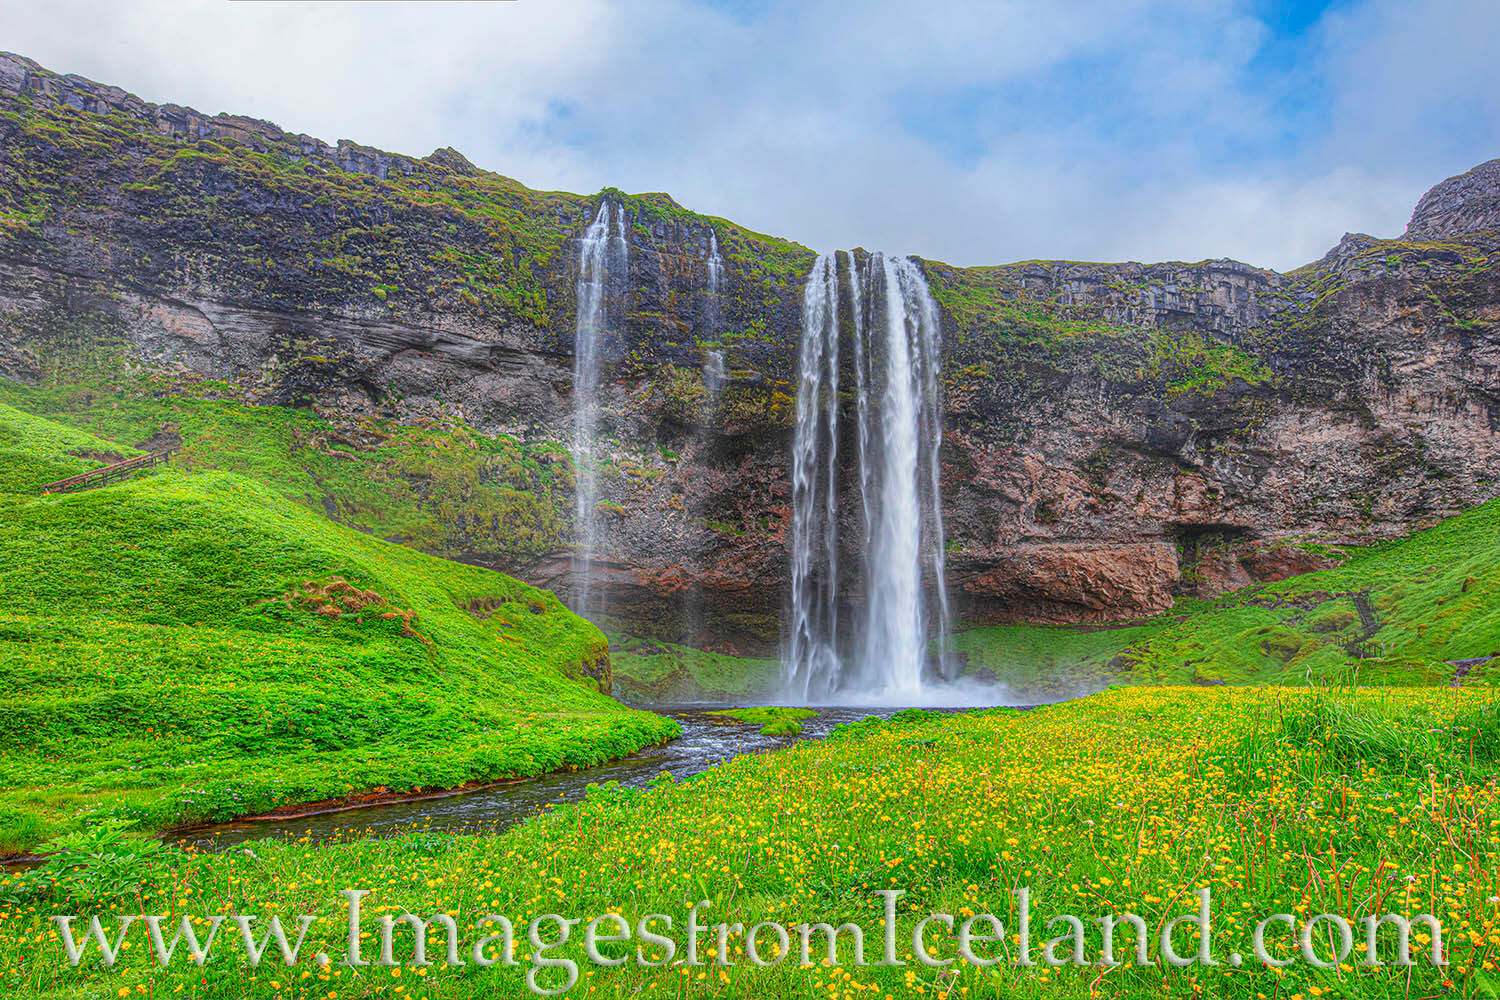 Tiny golden flowers adorn the lush green carpet in the front of the iconic Seljalandsfoss waterfall in south Iceland. The morning...